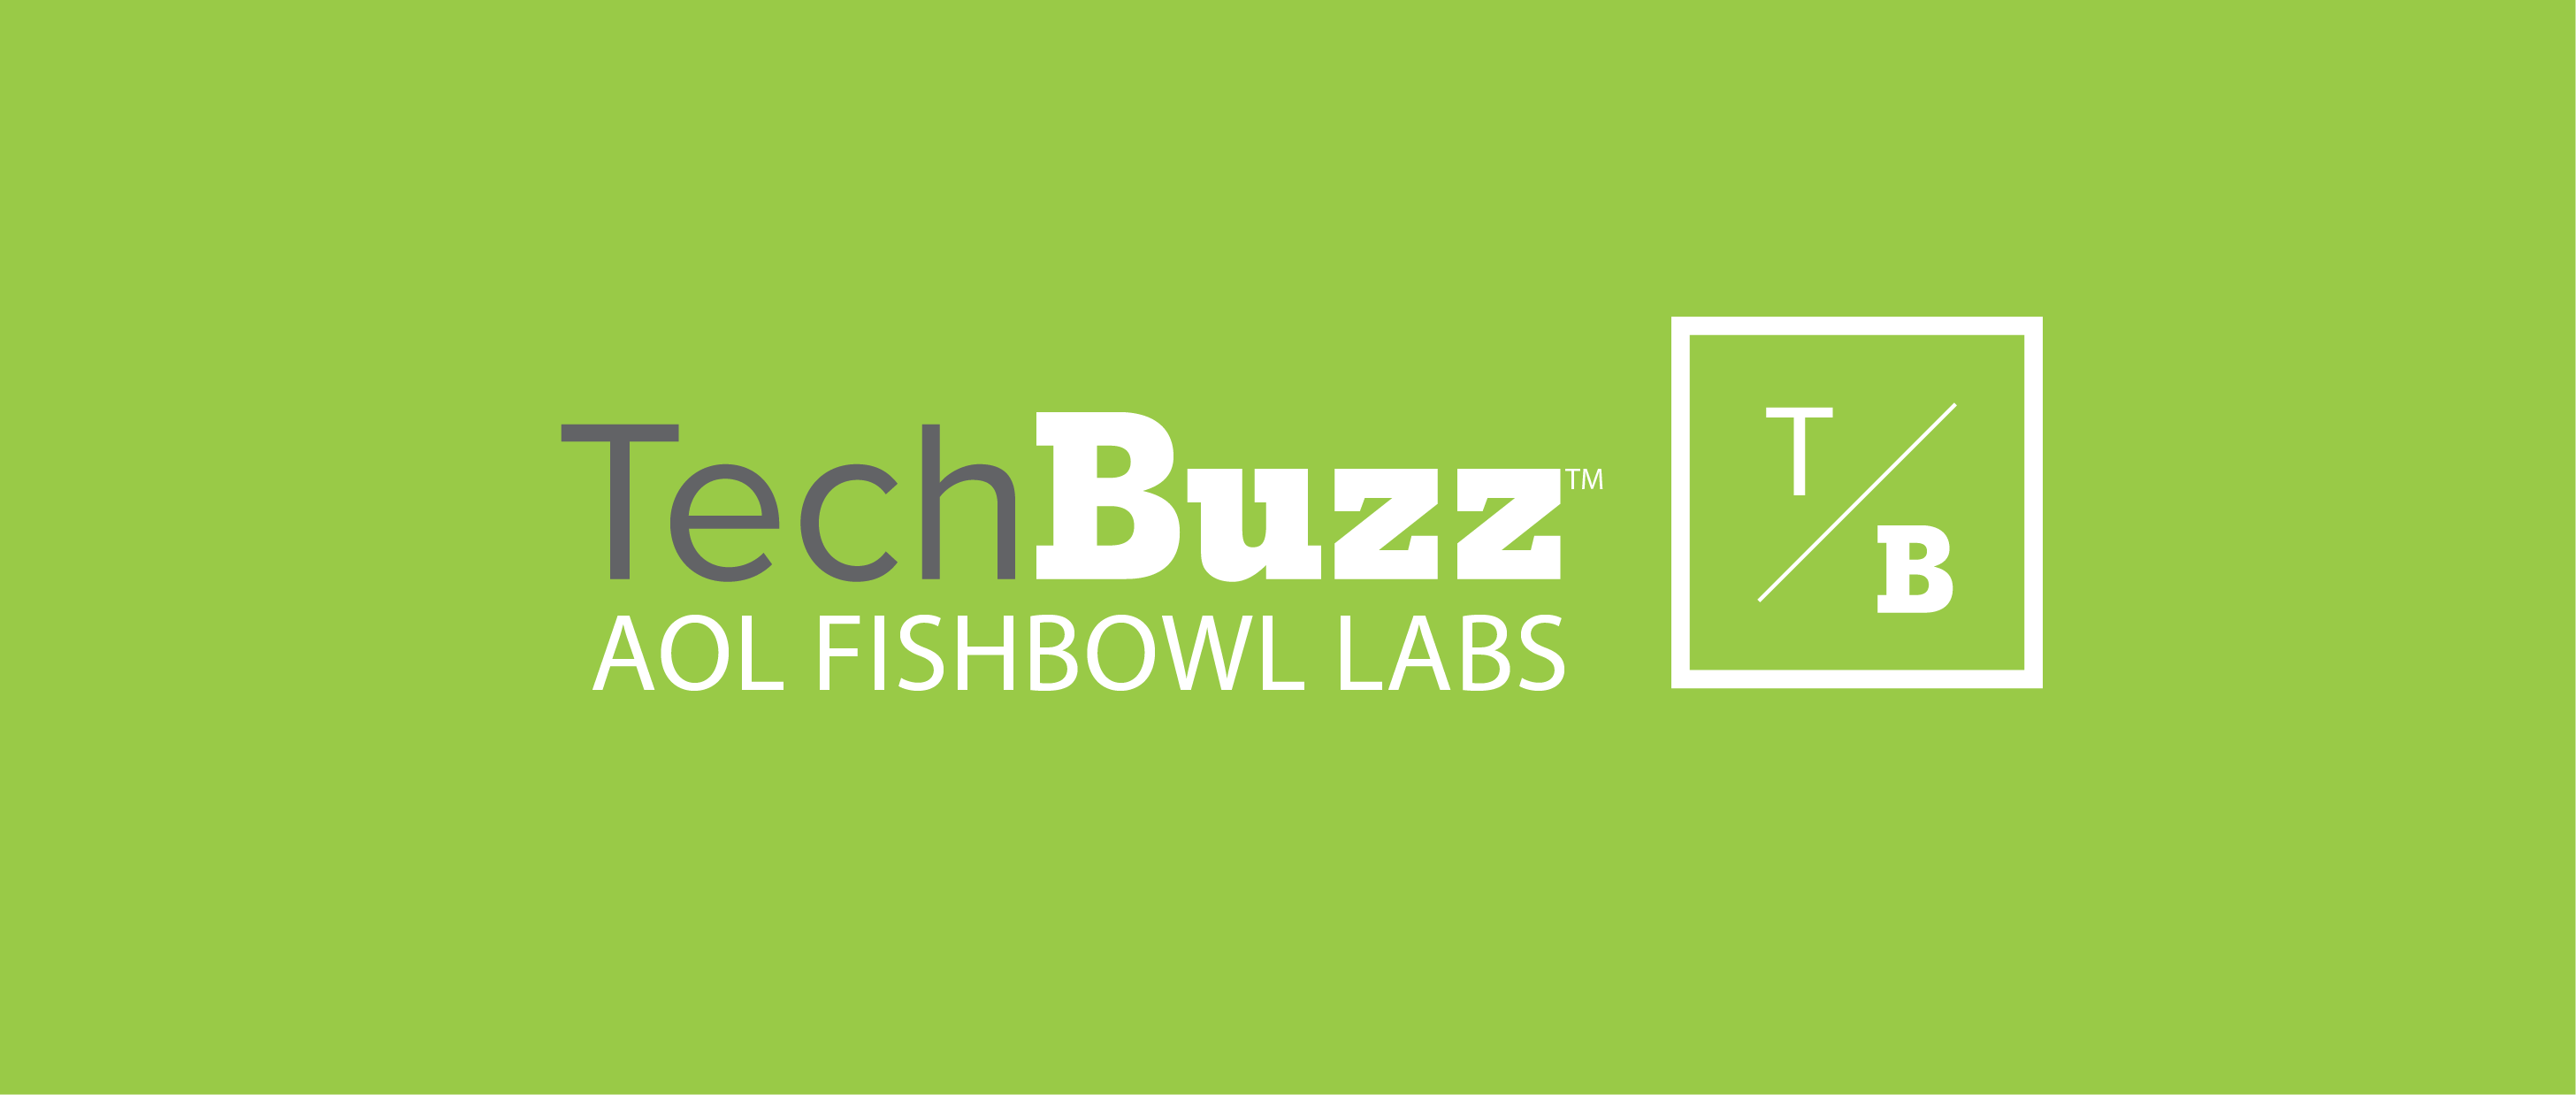 1004 -- TB-AOL Fishbowl Labs_HEADER